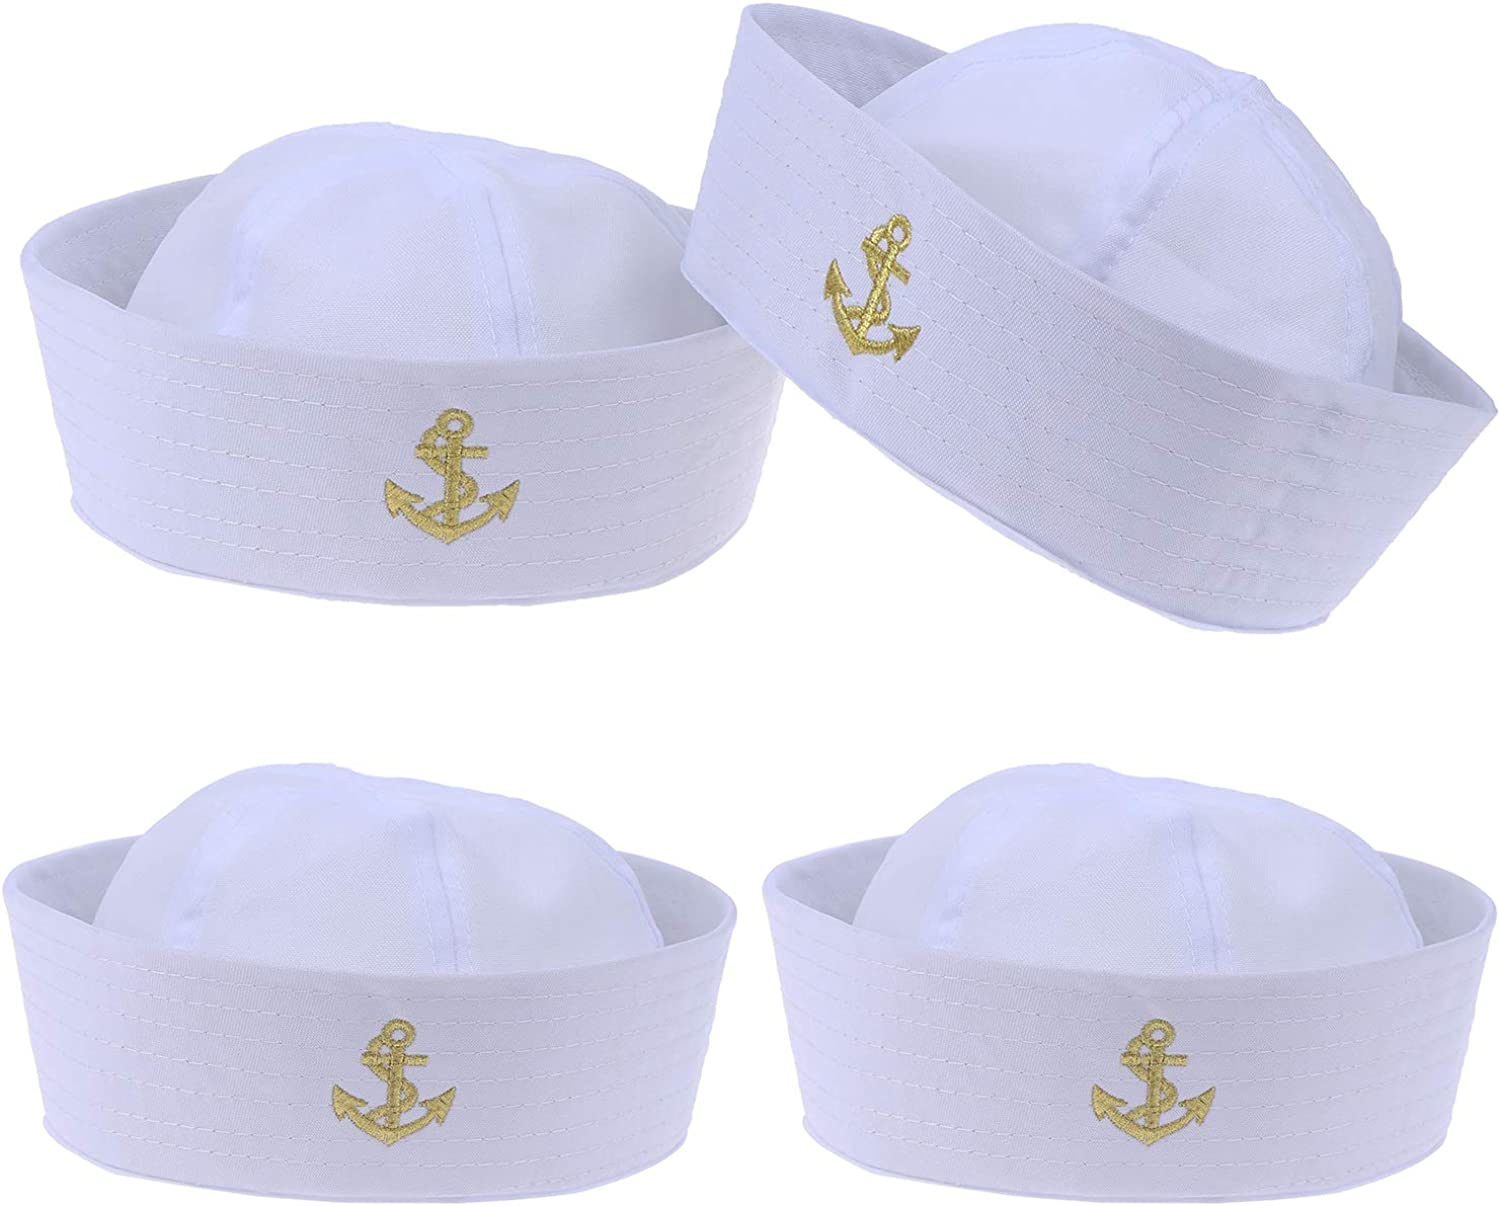 4 Pack White Sailor Caps Adult Yacht Navy Sailor Hats for Sailor Dress Up Holiday Party Cosplay